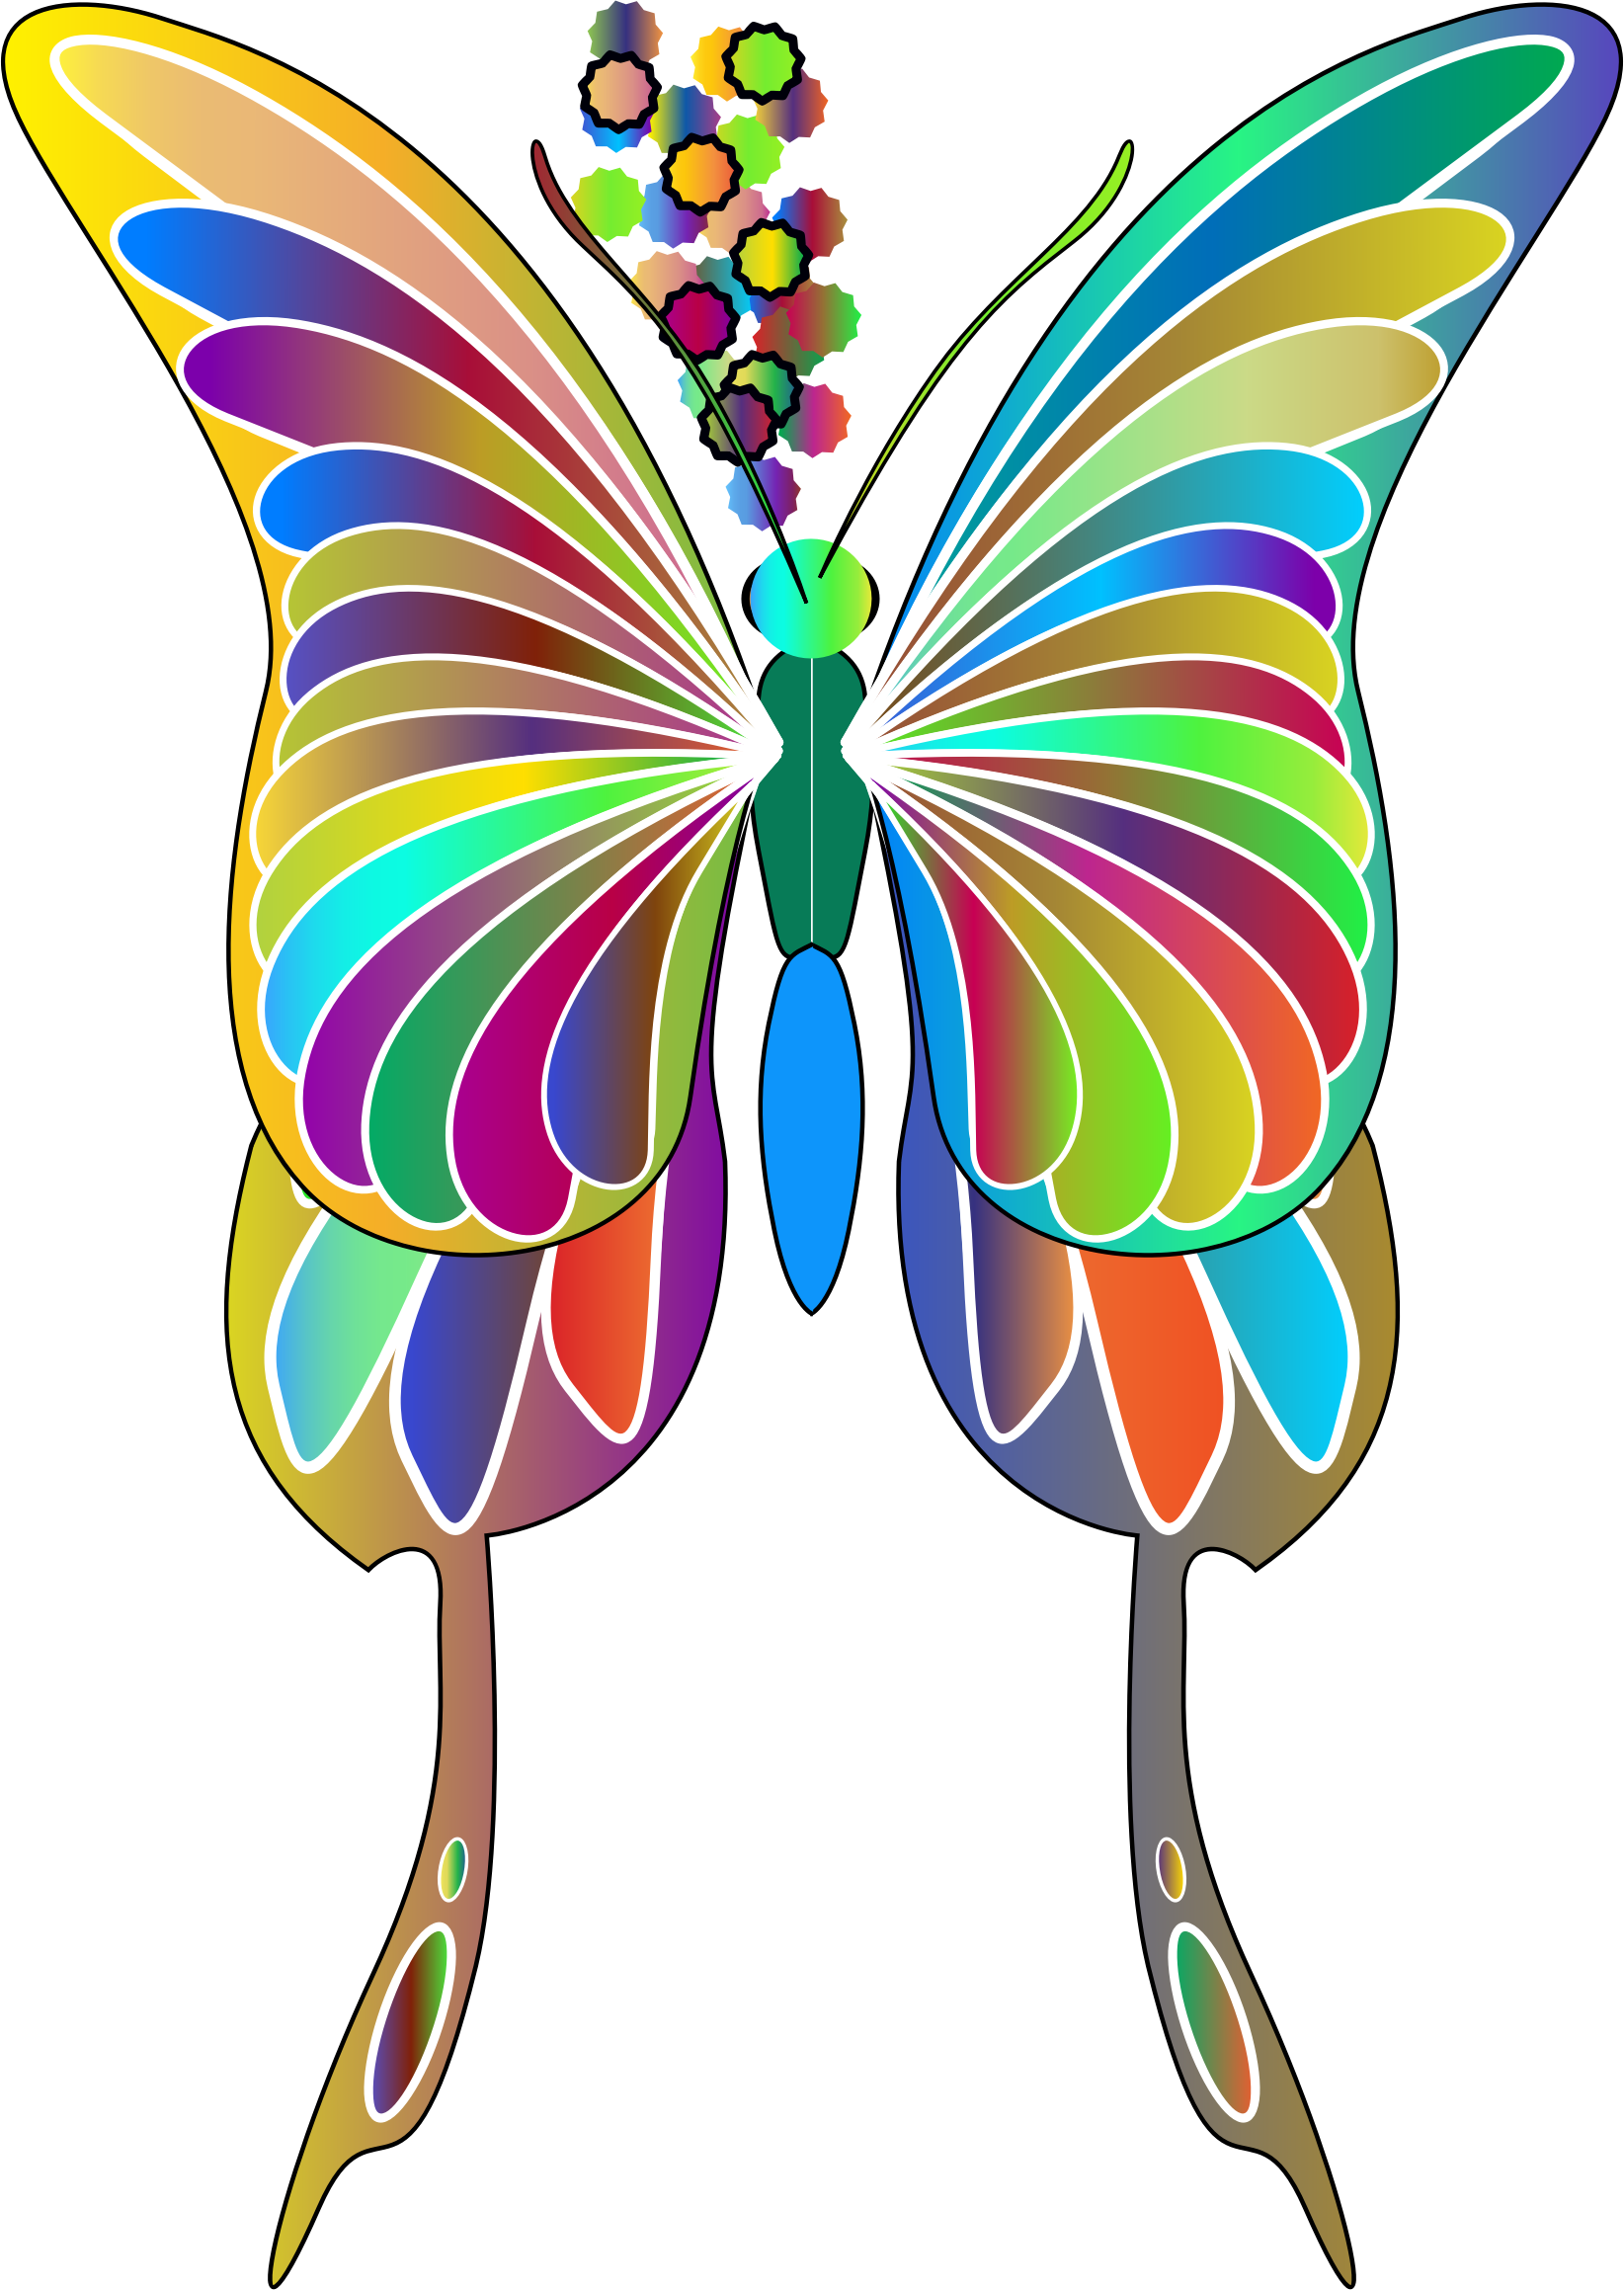 Insect clipart colorful flying butterfly. Swallowtail prismatic big image